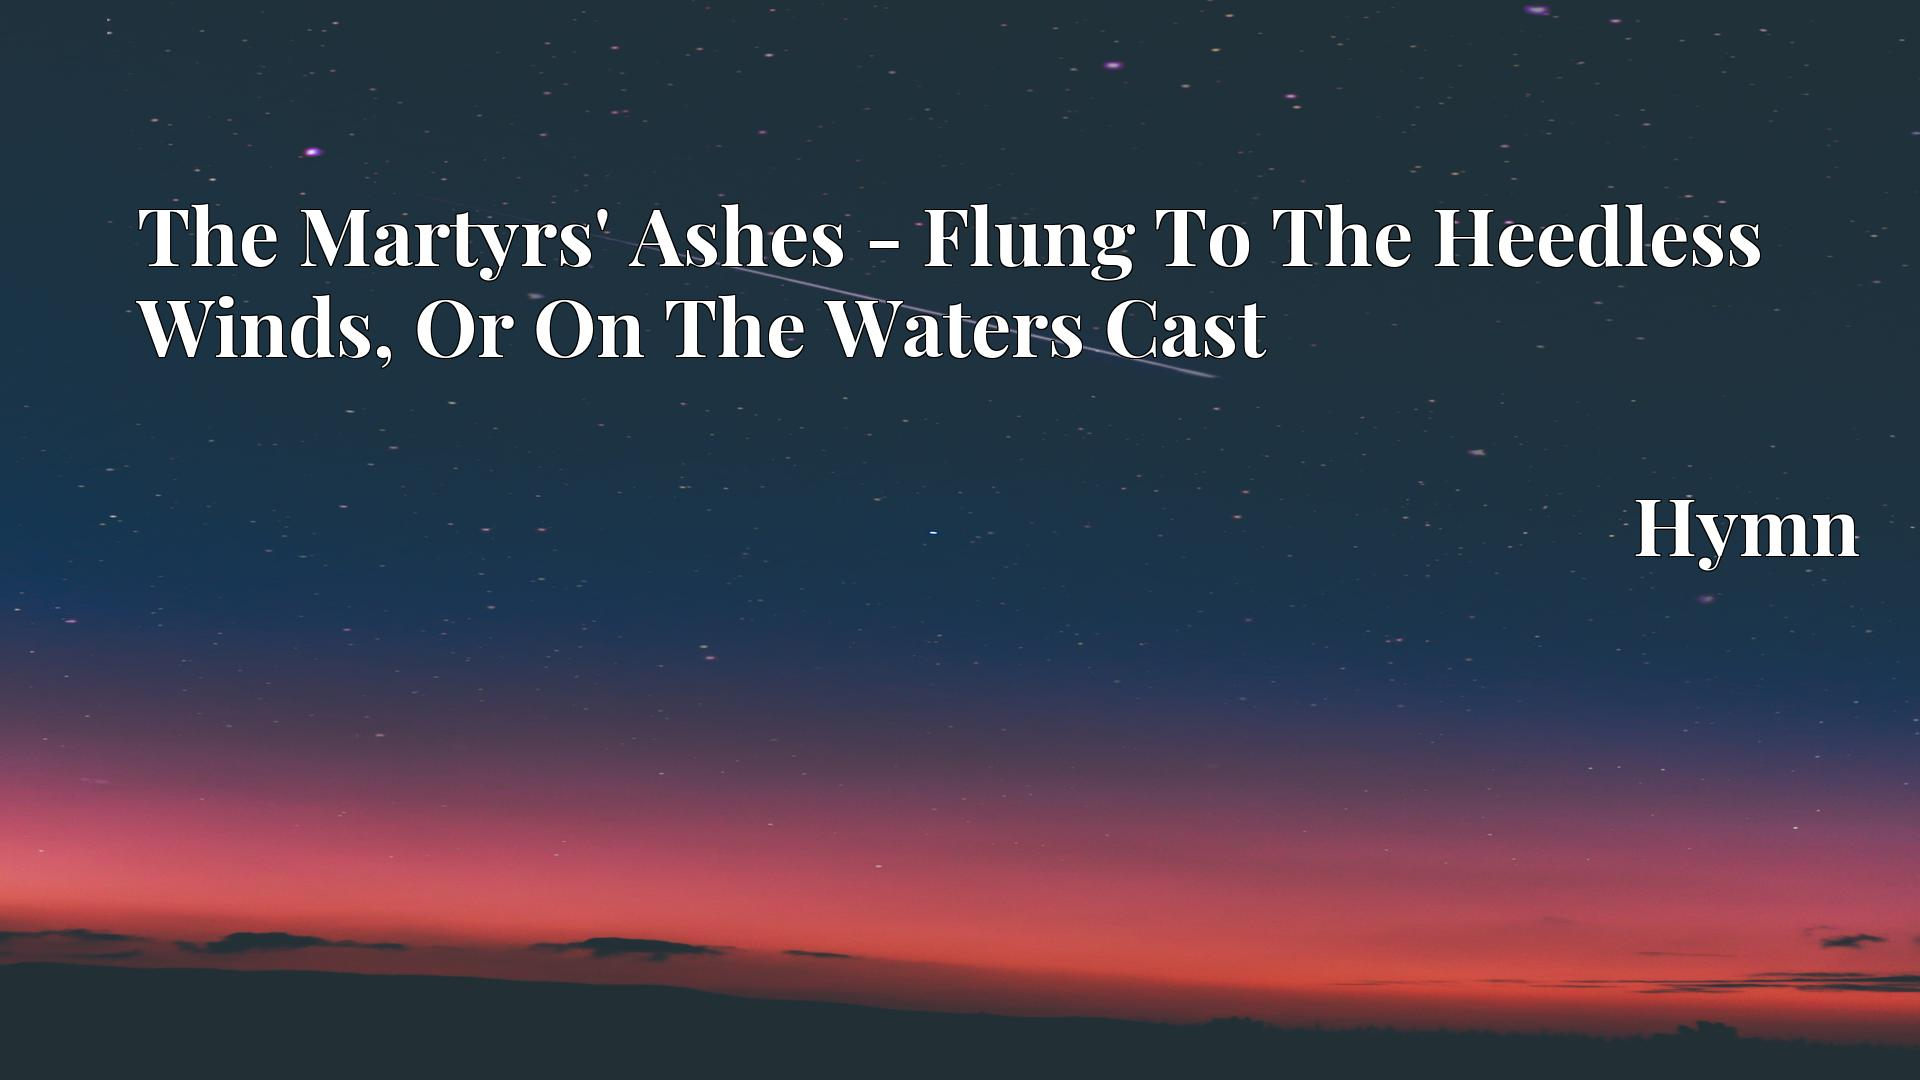 The Martyrs' Ashes - Flung To The Heedless Winds, Or On The Waters Cast - Hymn